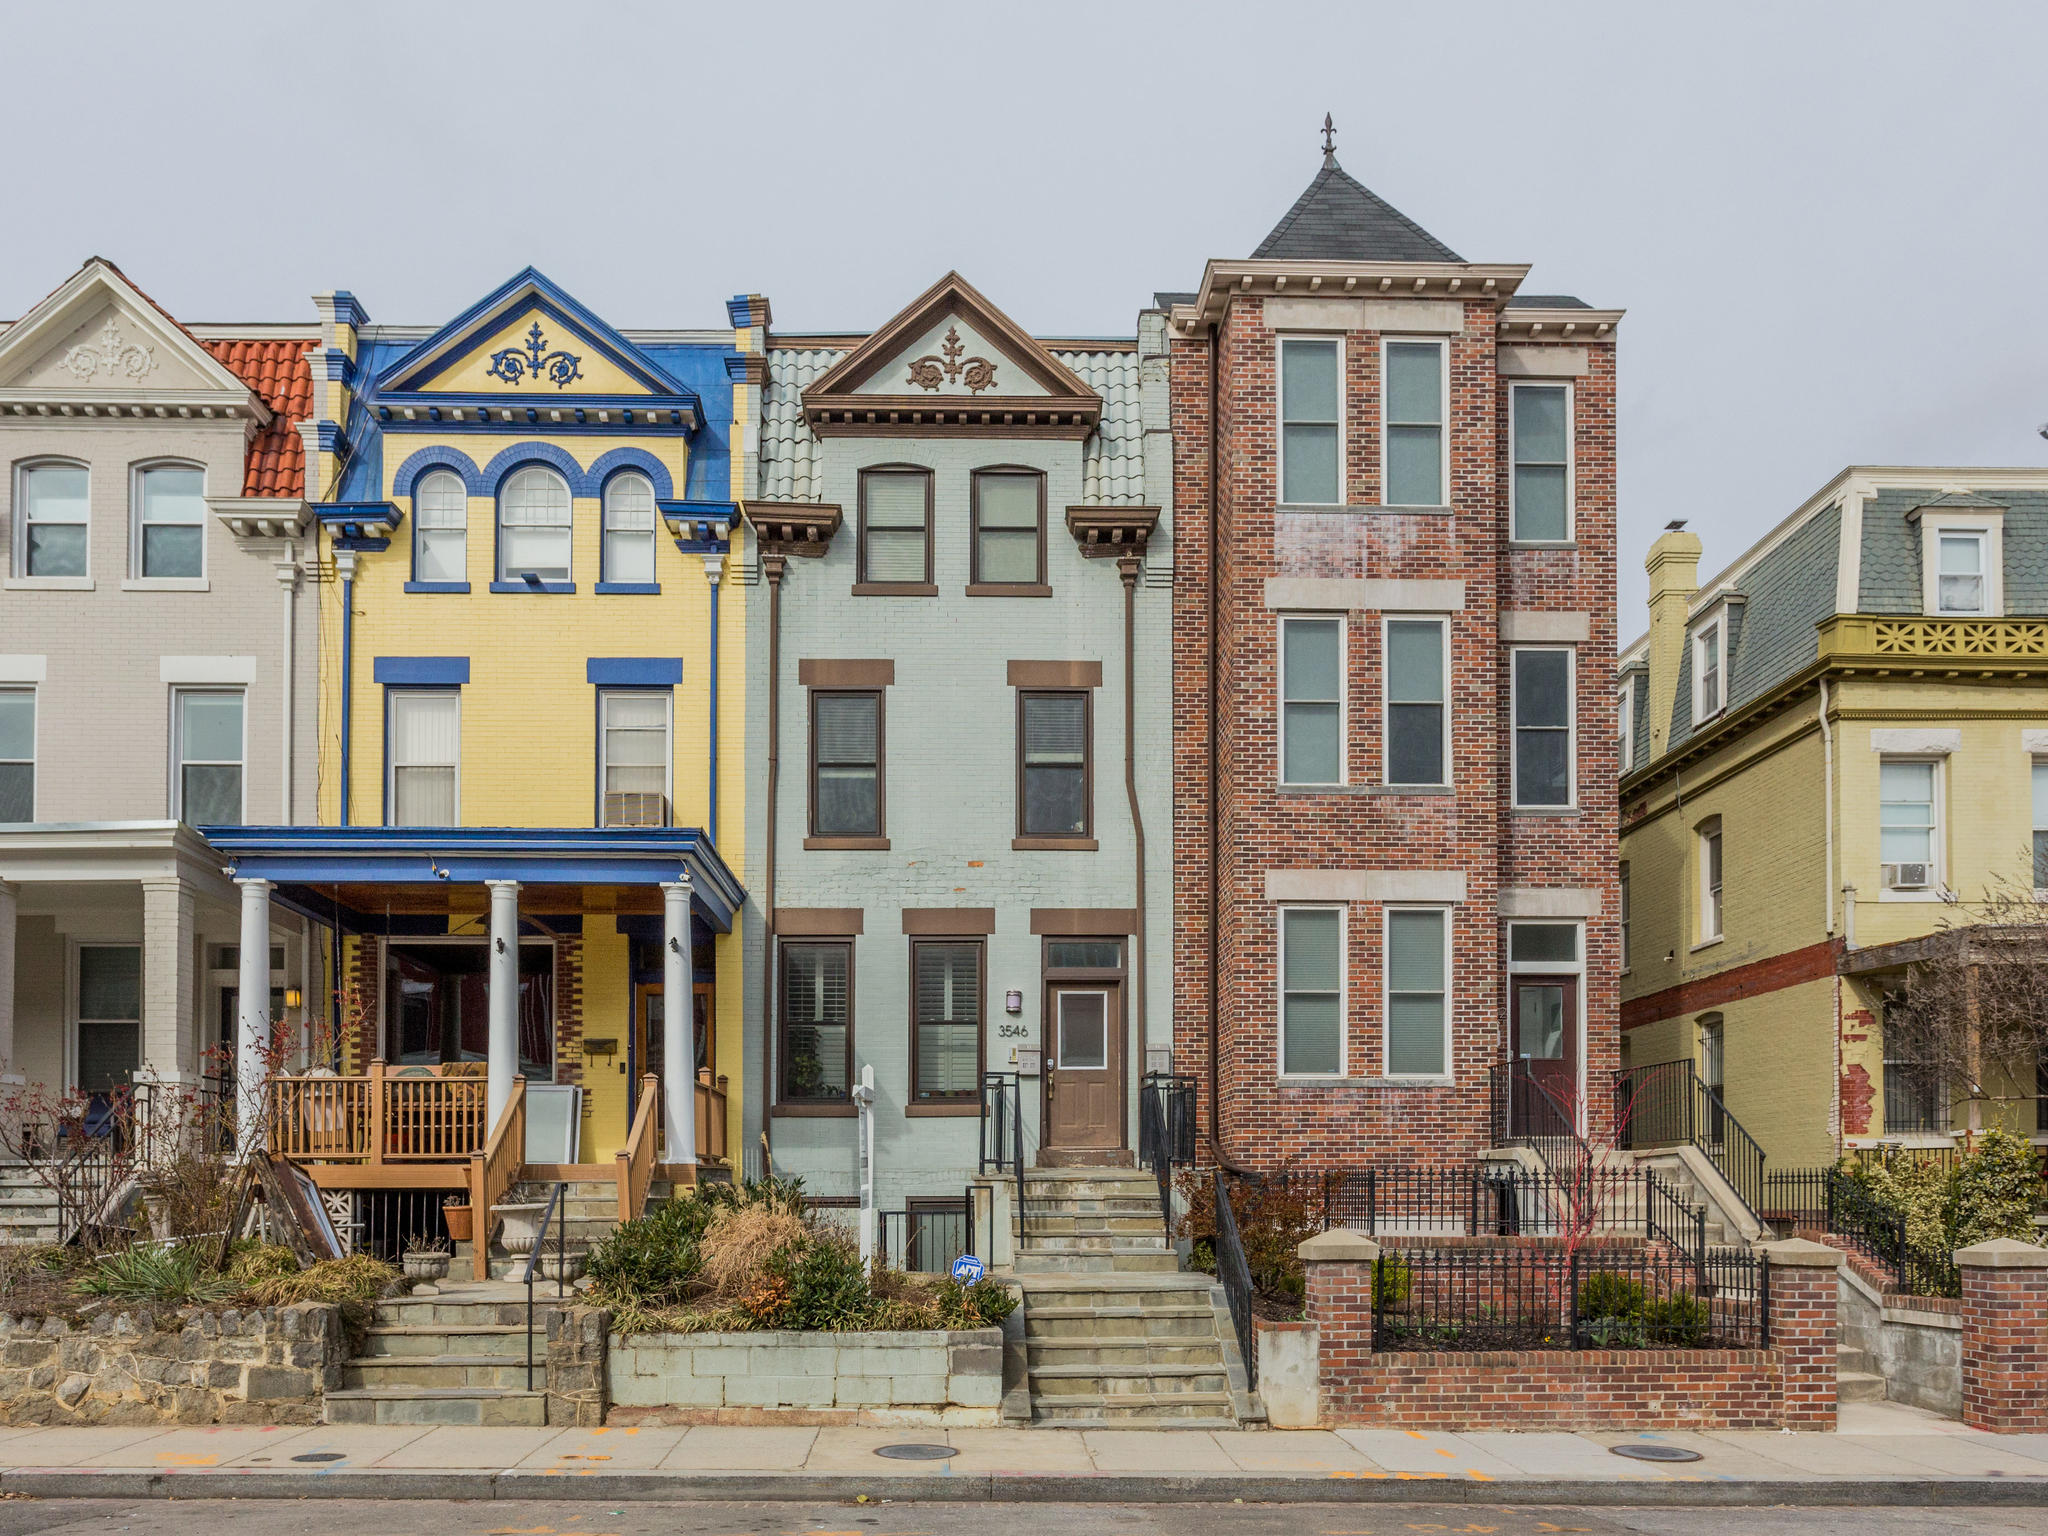 3546 13th St NW Washington DC-MLS_Size-002-2-Front Exterior-2048x1536-72dpi.jpg